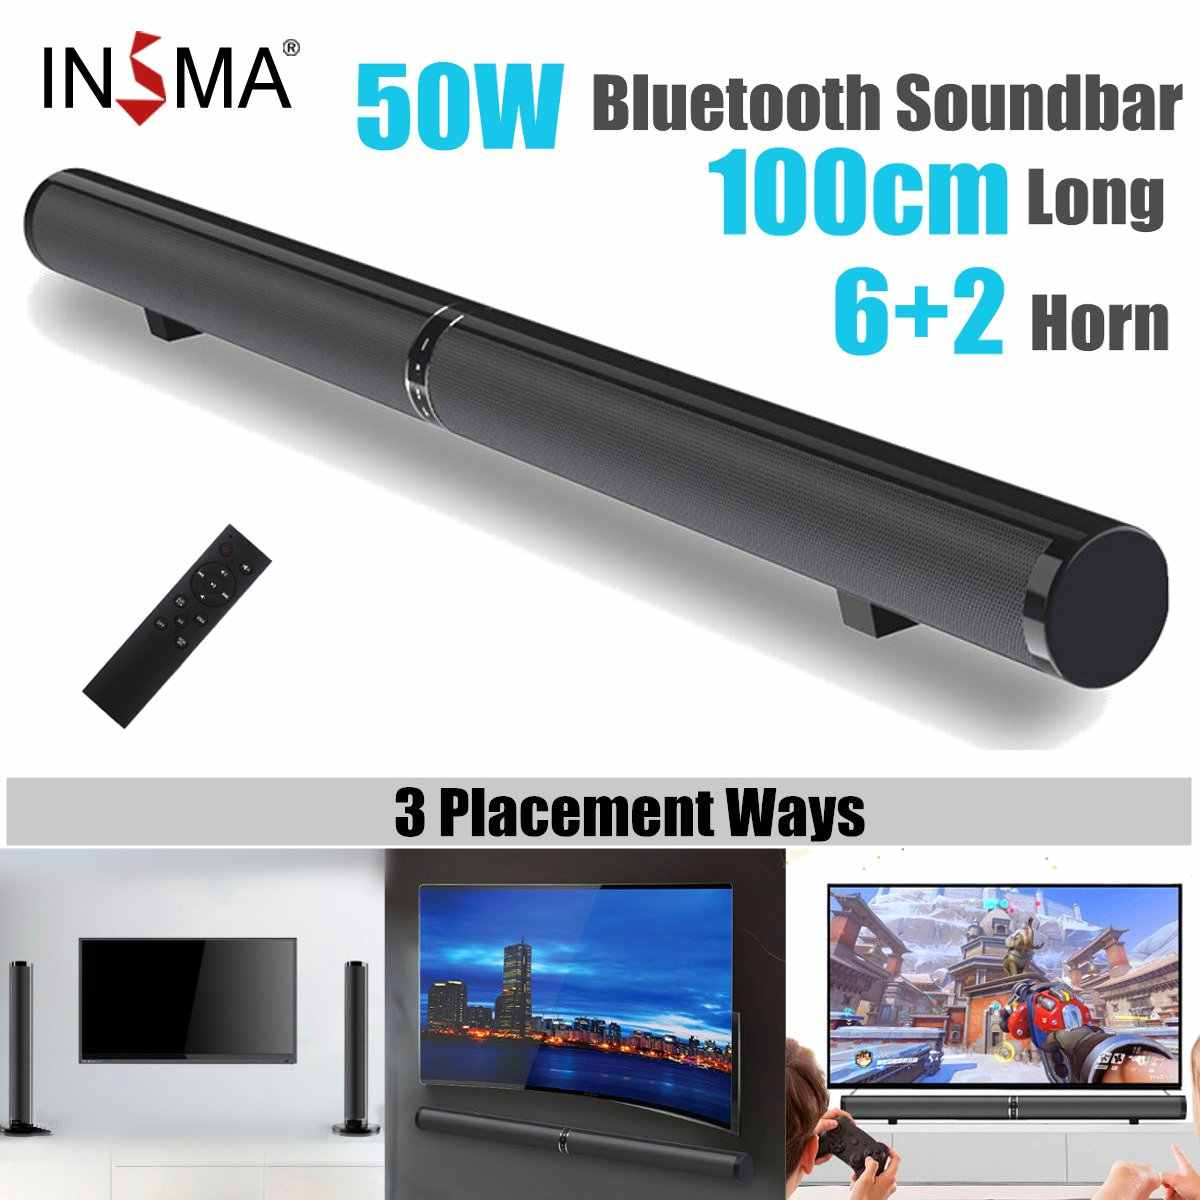 50W 100cm HiFi Abnehmbare Drahtlose bluetooth Soundbar-lautsprecher 3D Surround Stereo Subwoofer für TV Home Theatre System Sound bar